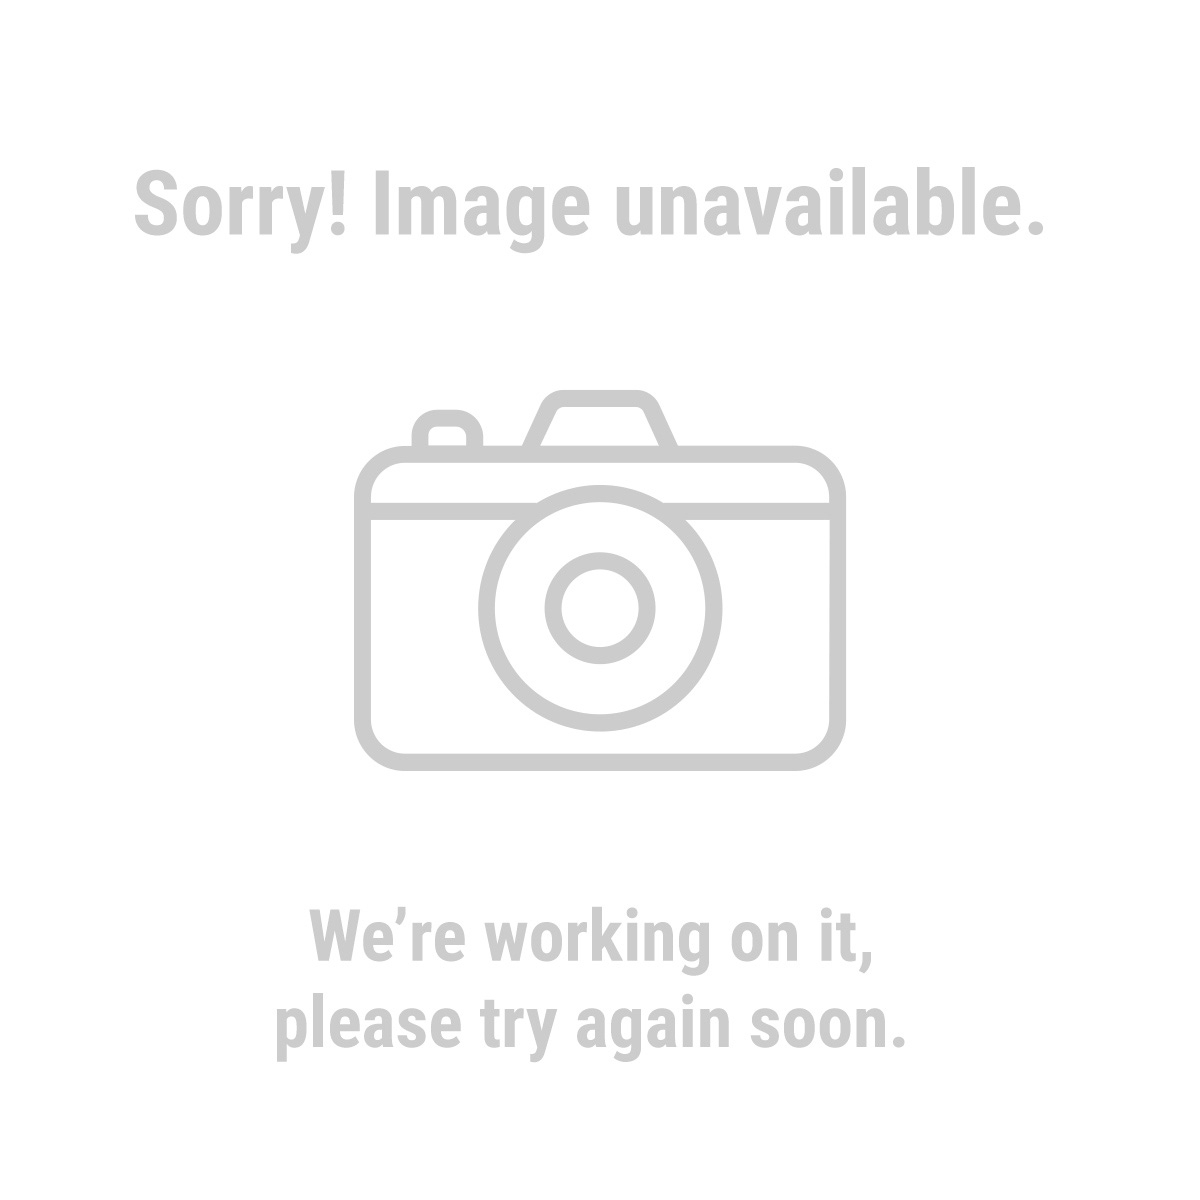 Chicago Electric Welding 67701 8 ft. x 8 ft. Fiberglass Welding Blanket